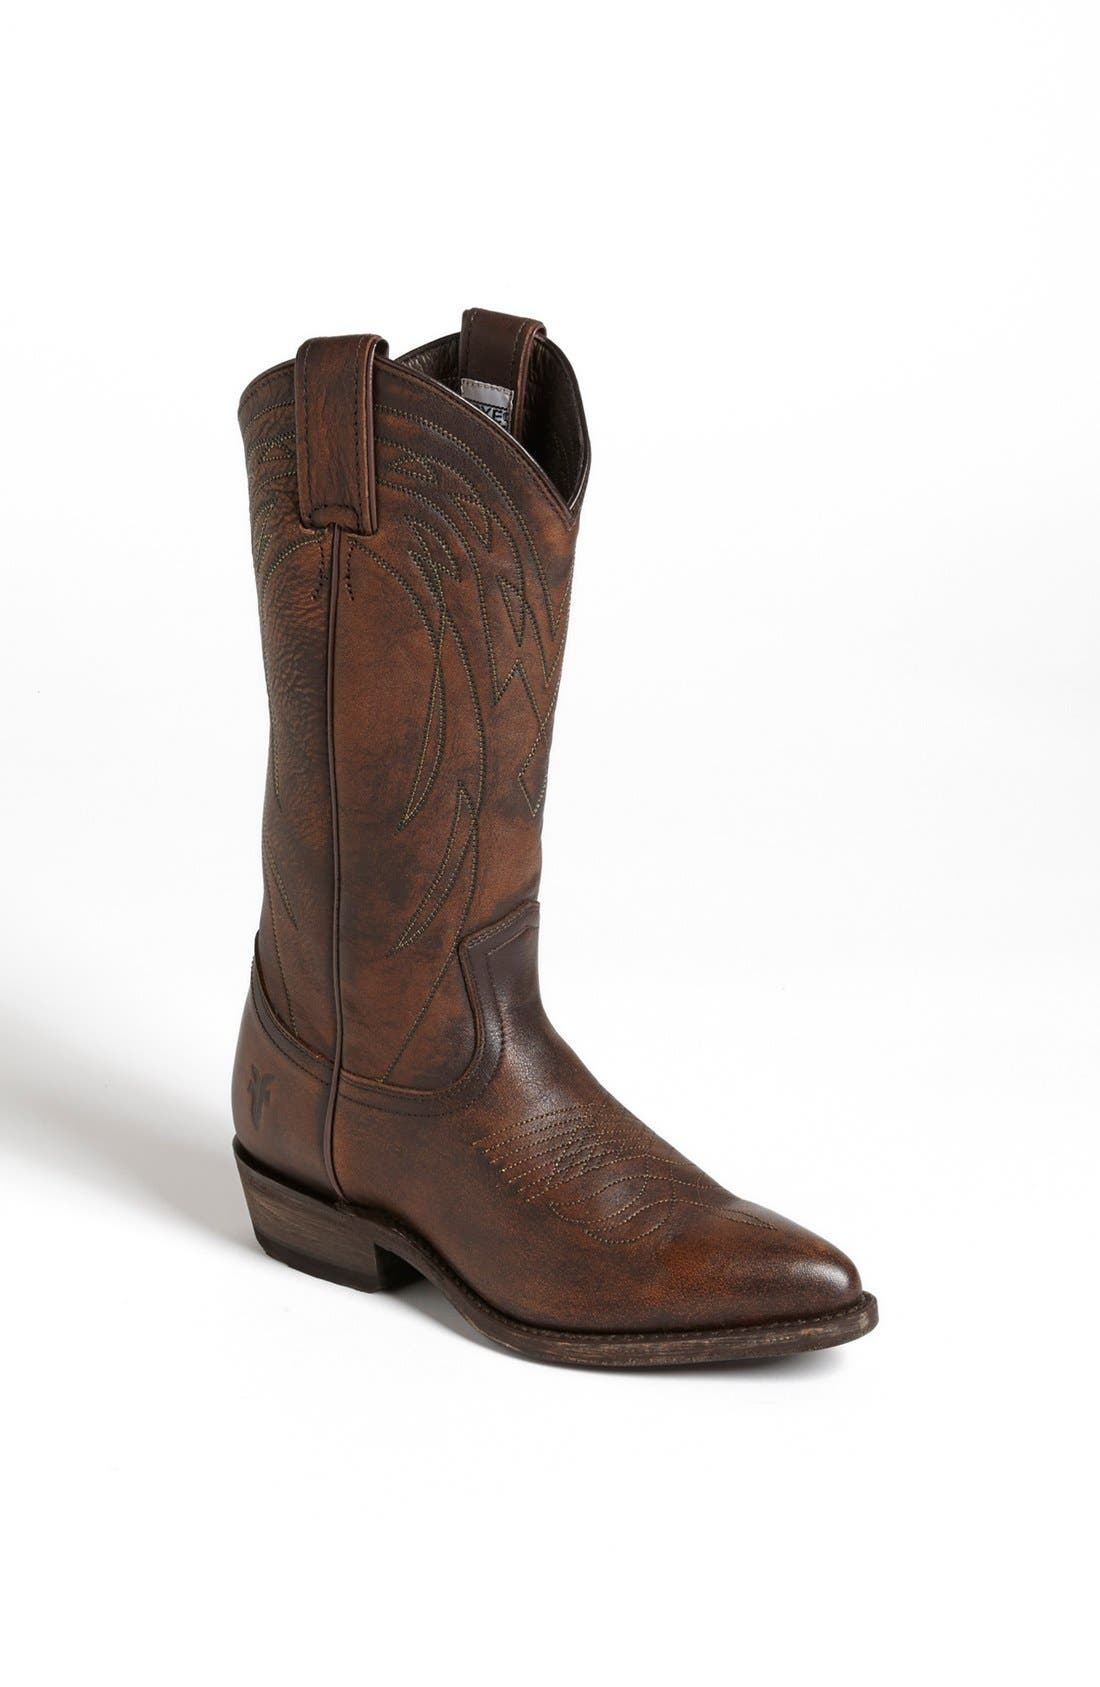 Alternate Image 1 Selected - Frye 'Billy' Leather Western Boot (Women)